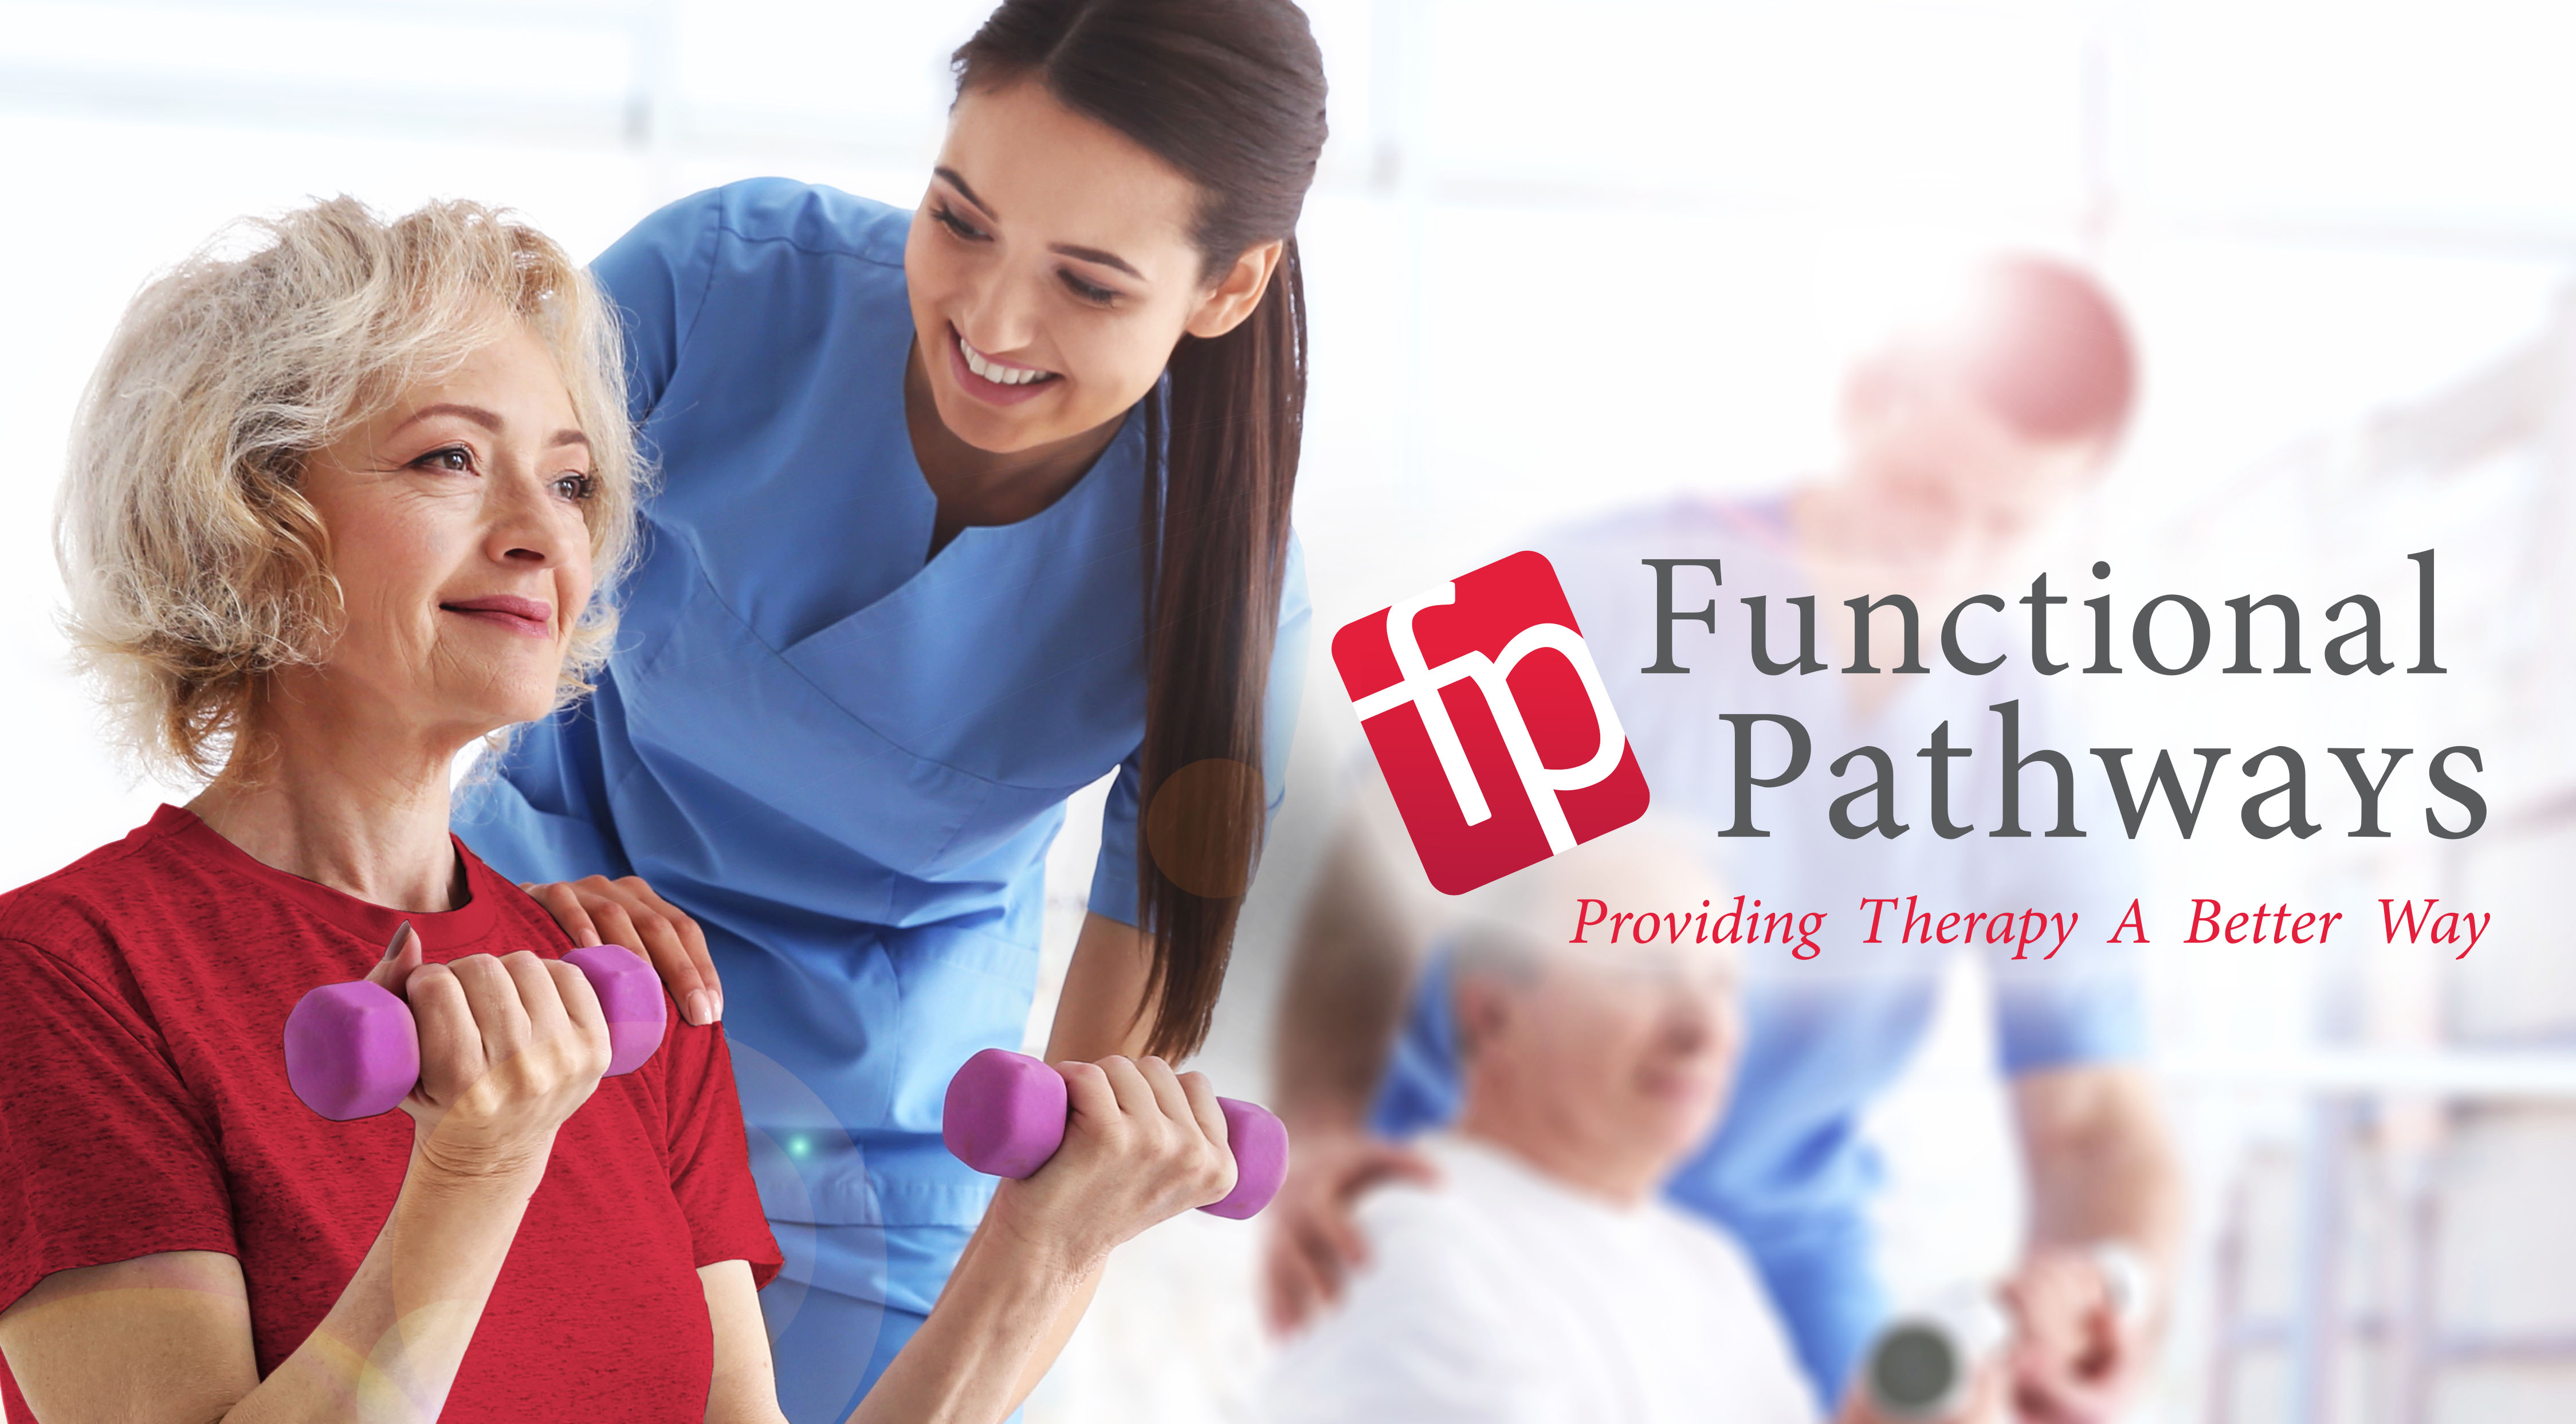 Functional Pathways - Providing Therapy a Better Way